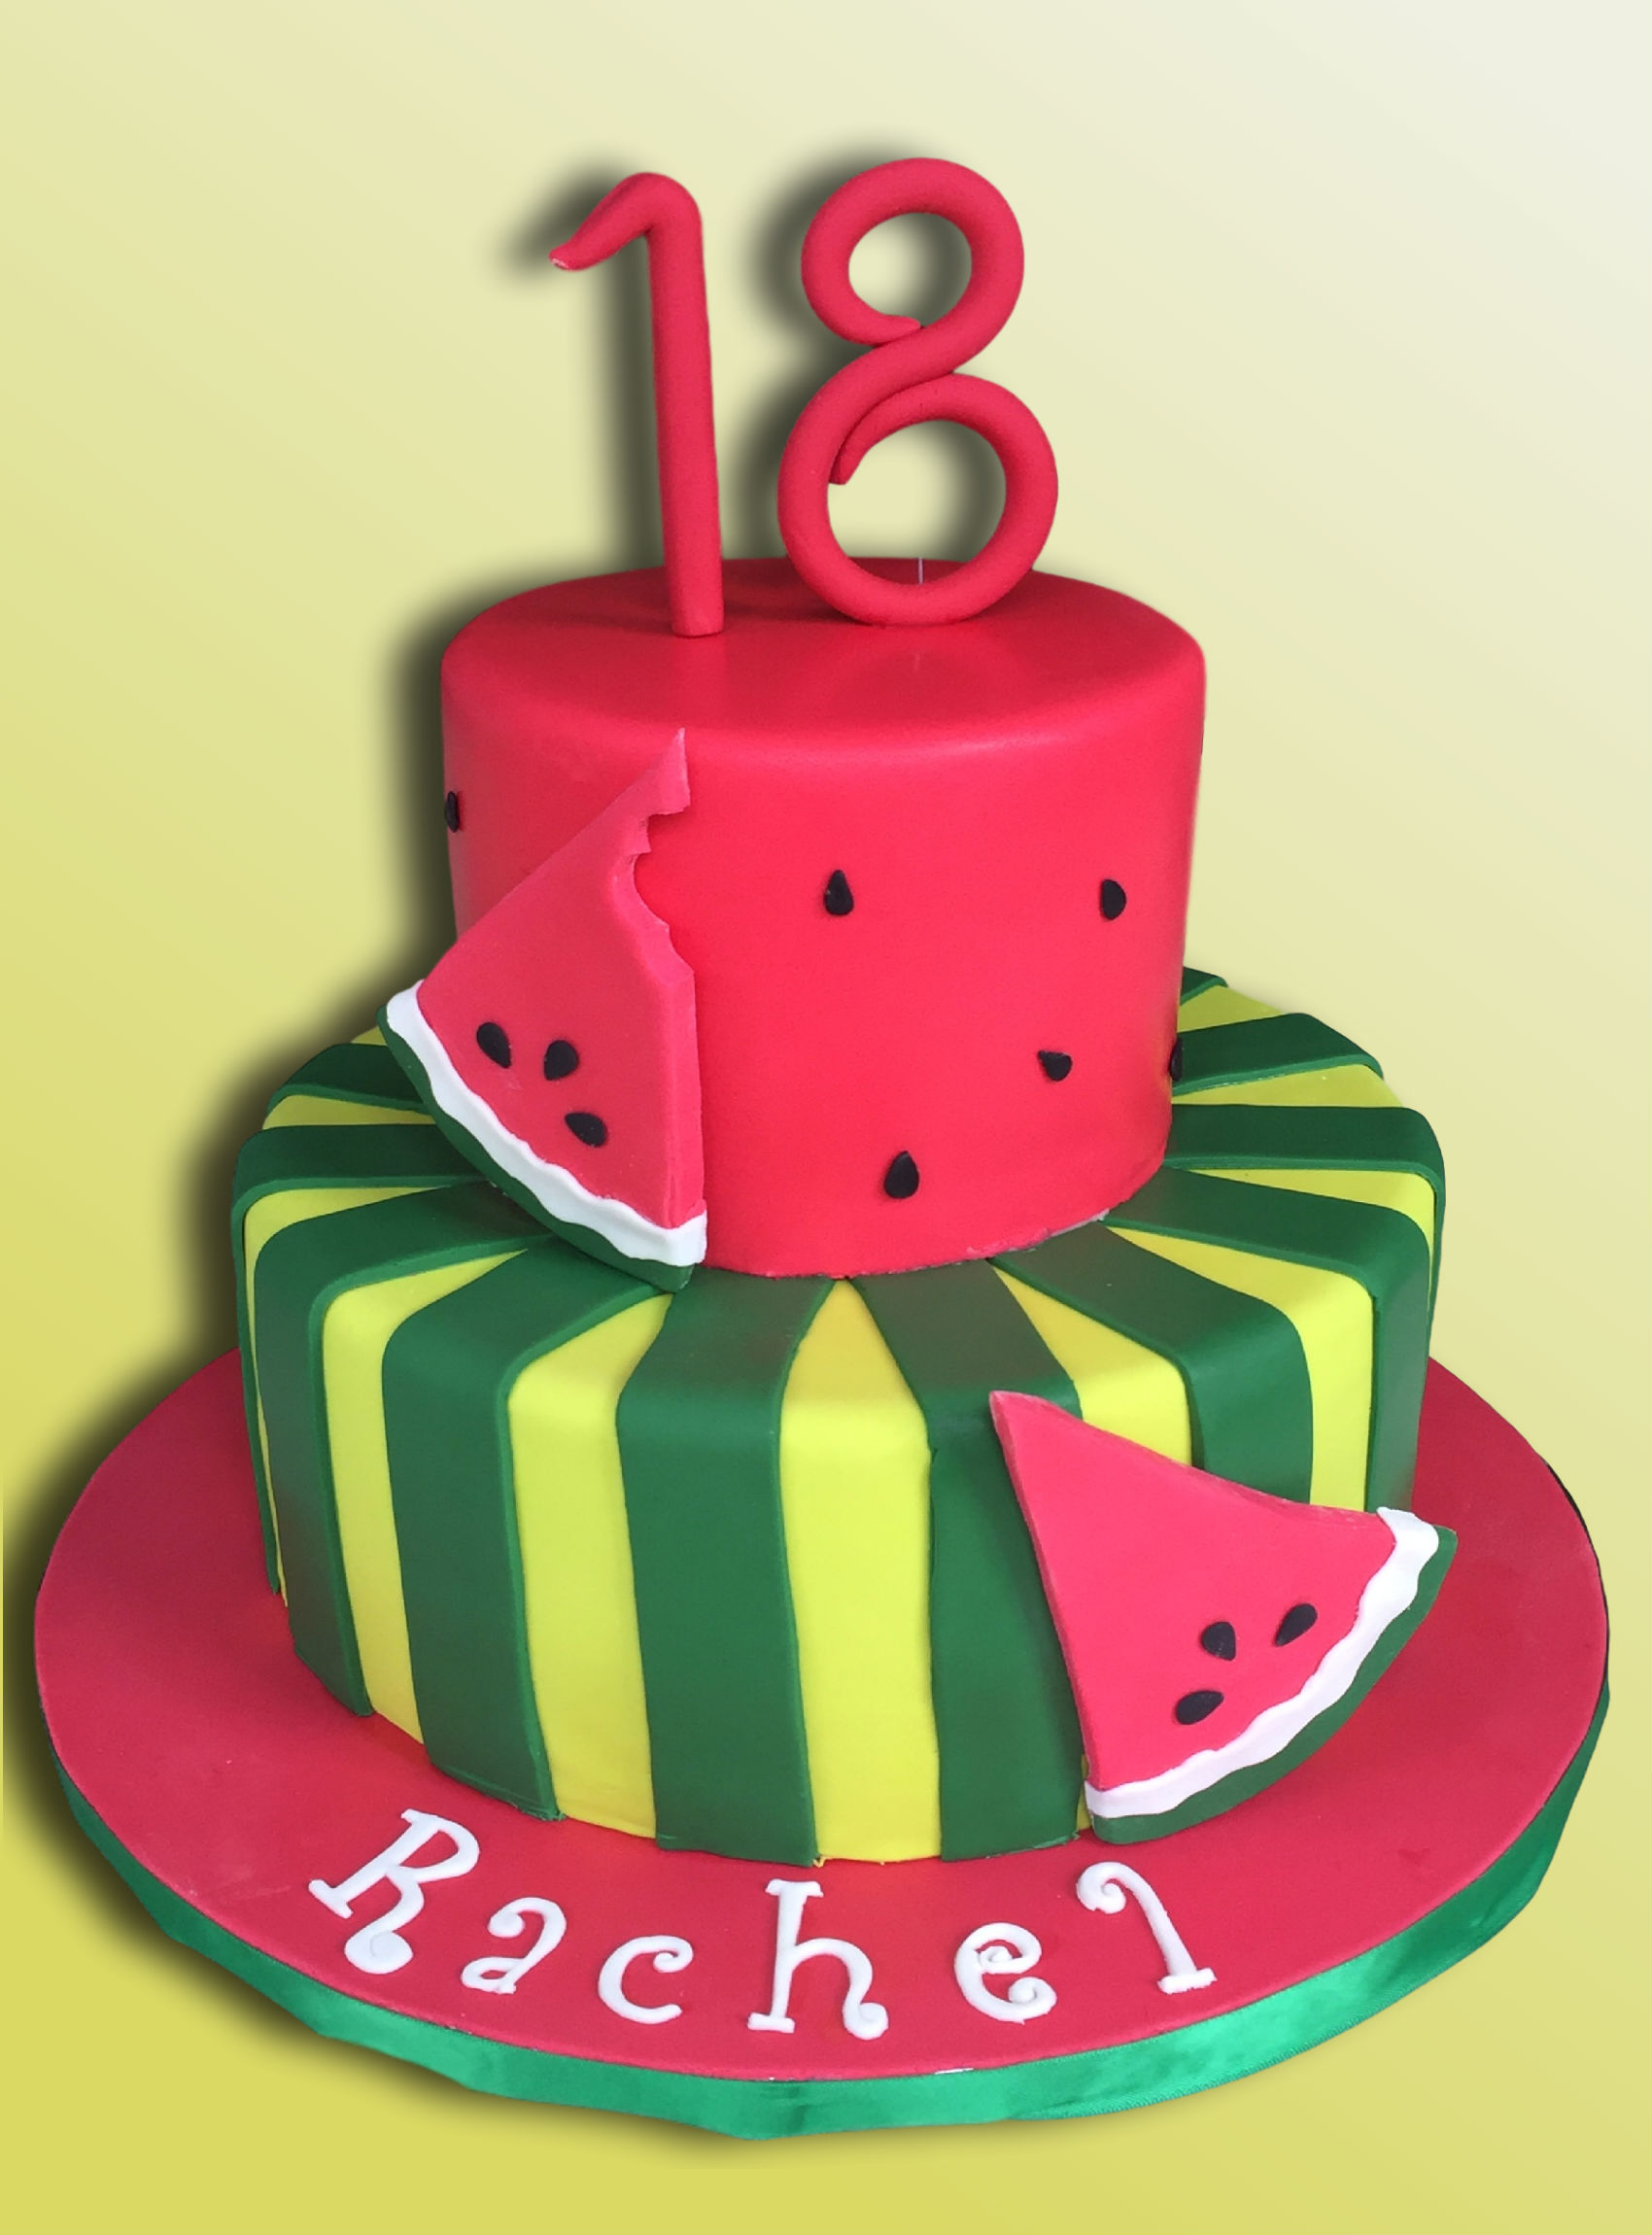 18th Birthday Cake Watermelon Theme Cake Celebrations